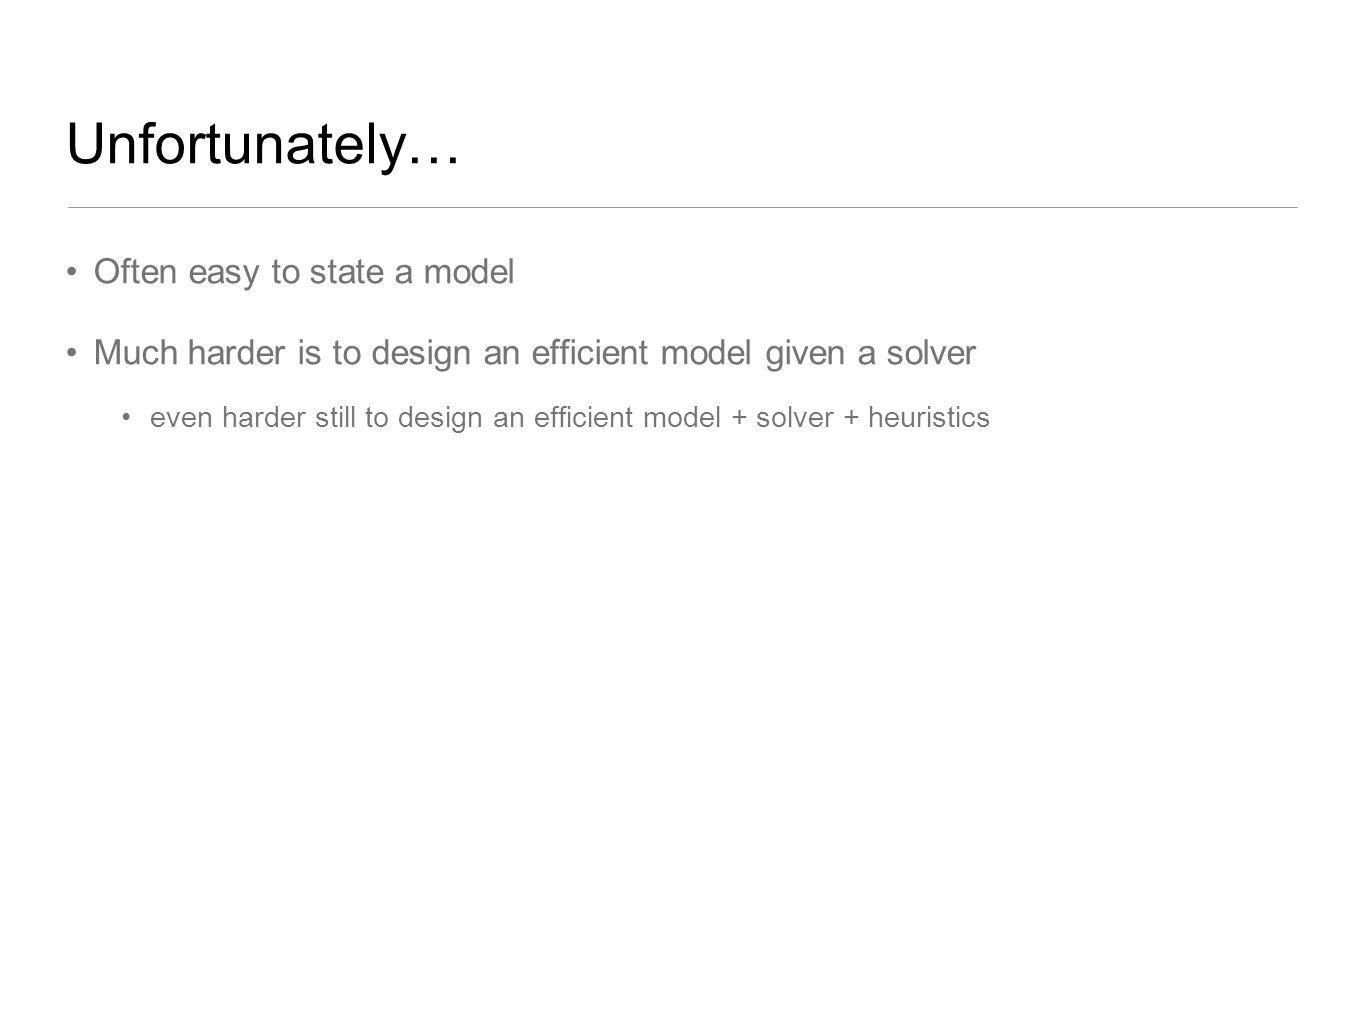 Unfortunately… Often easy to state a model